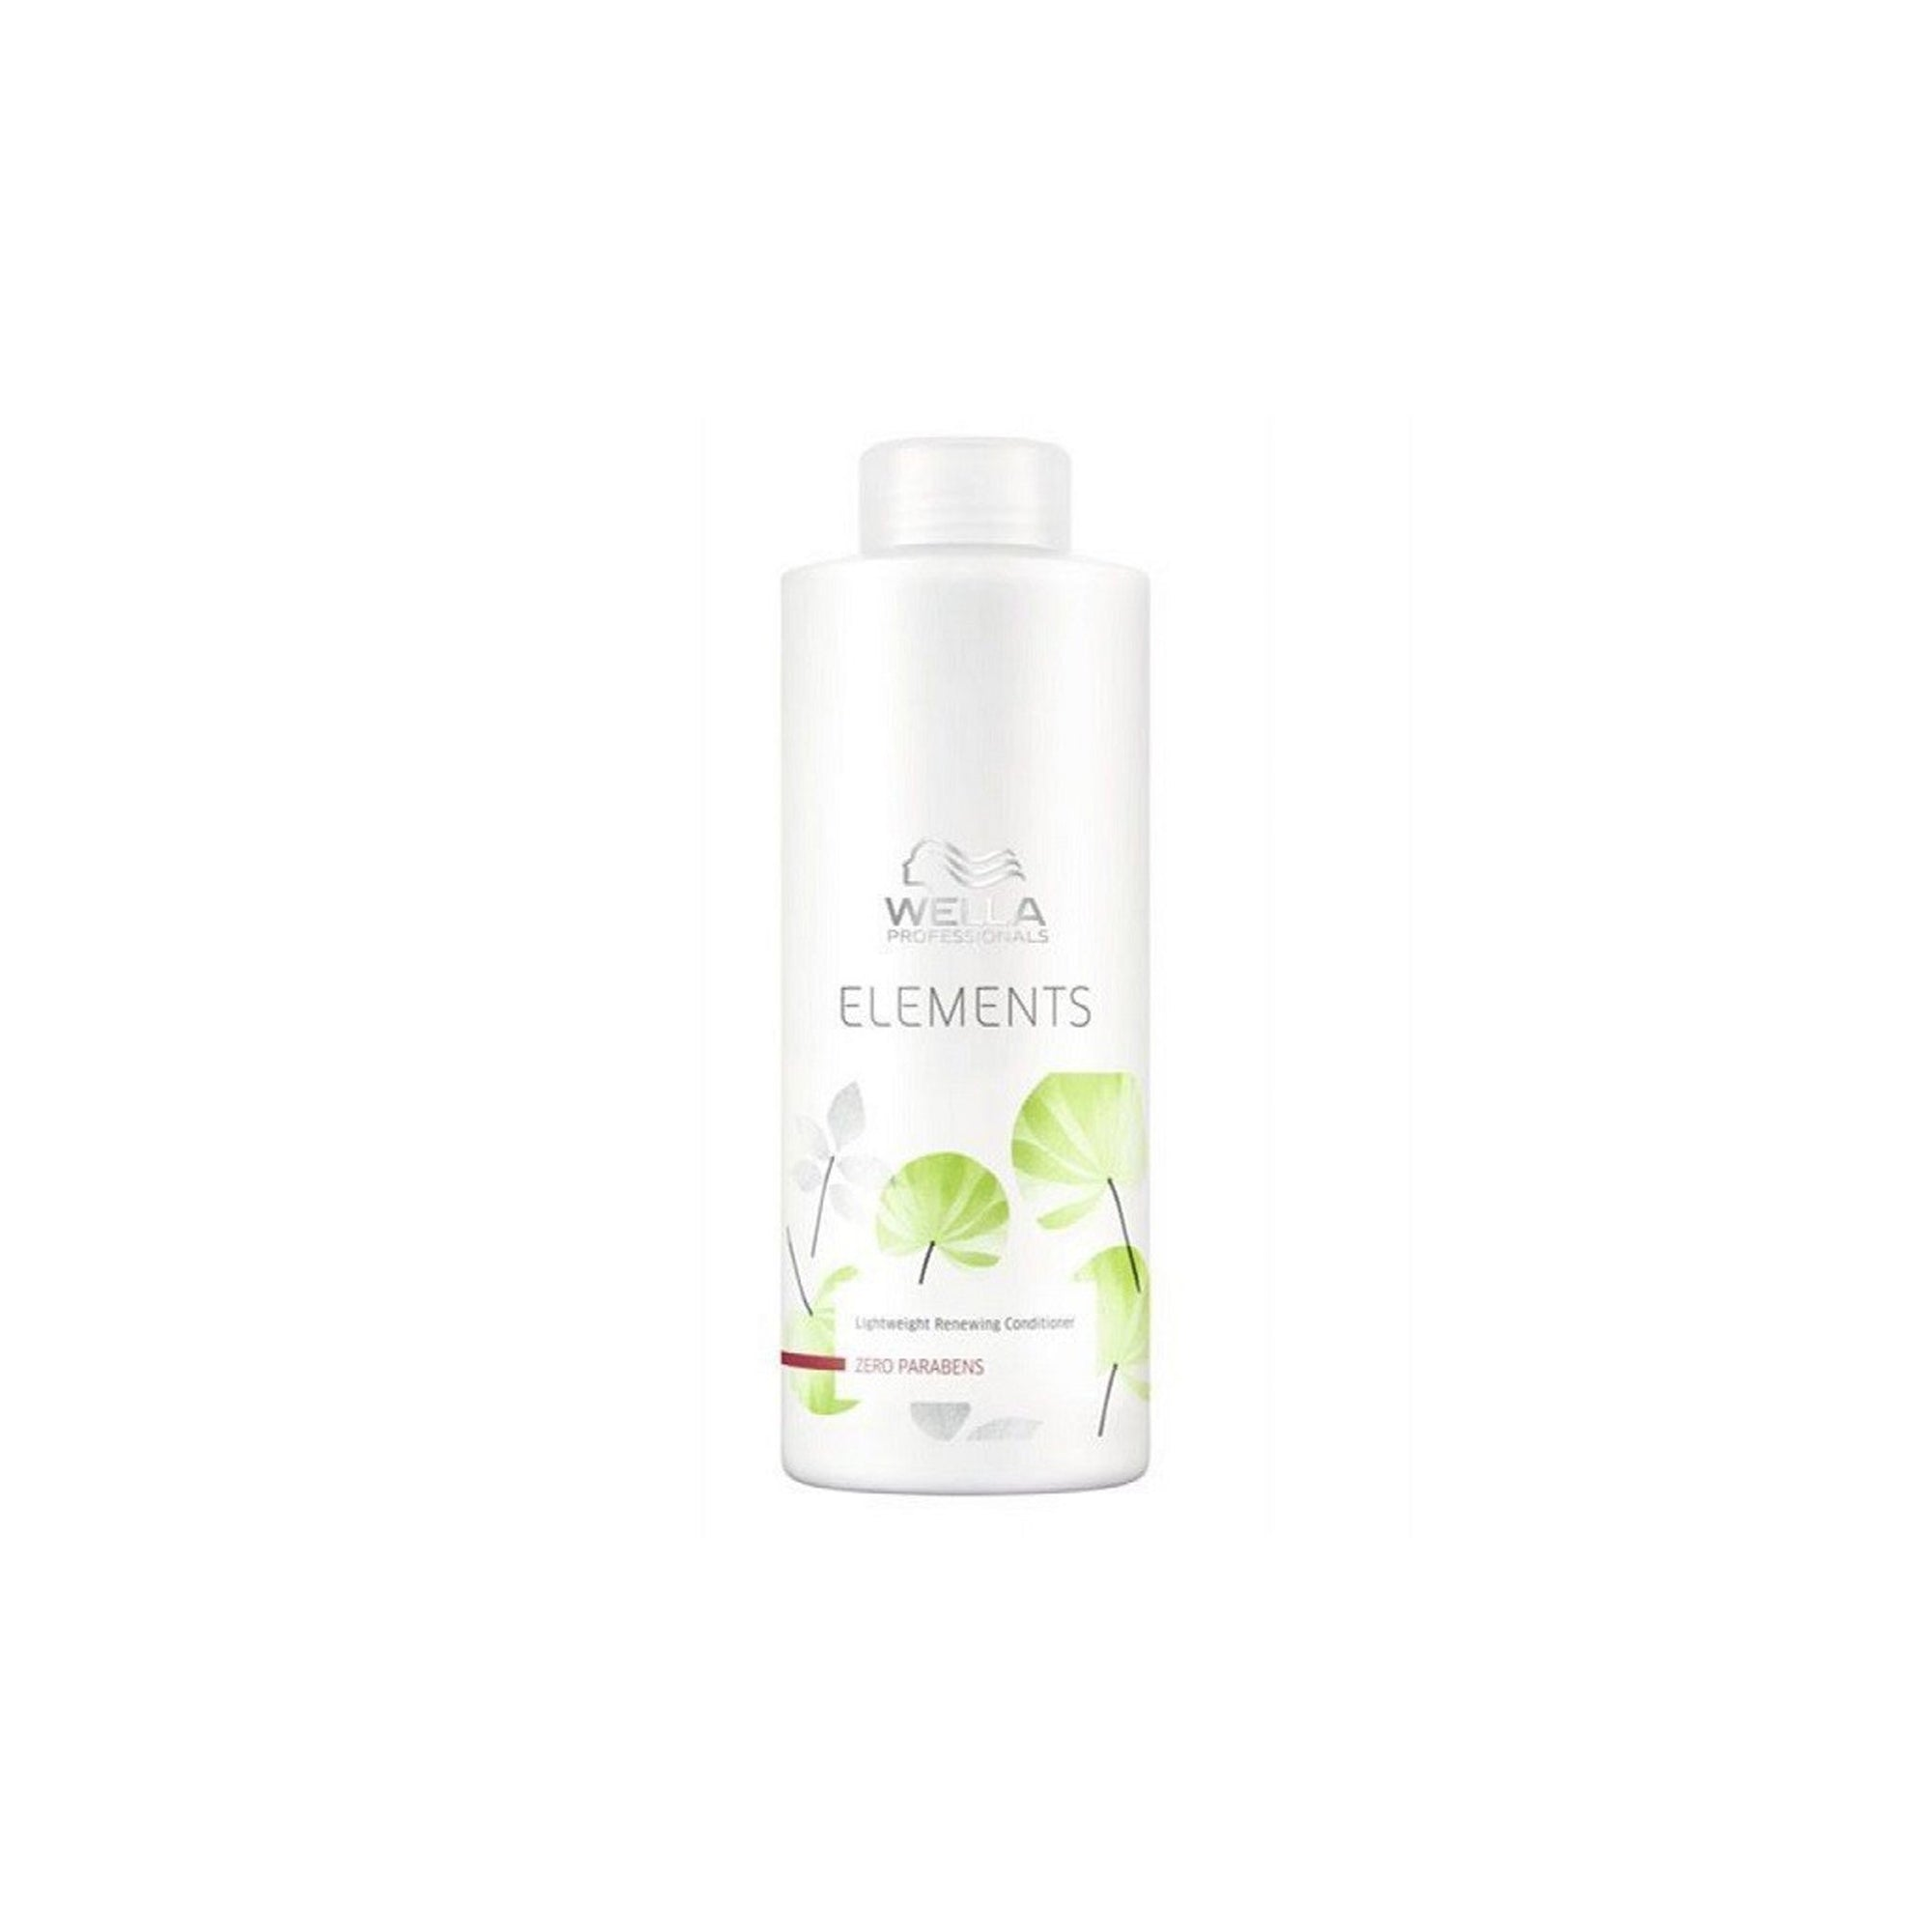 Wella Elements Daily Renewing Conditioner 1000ml